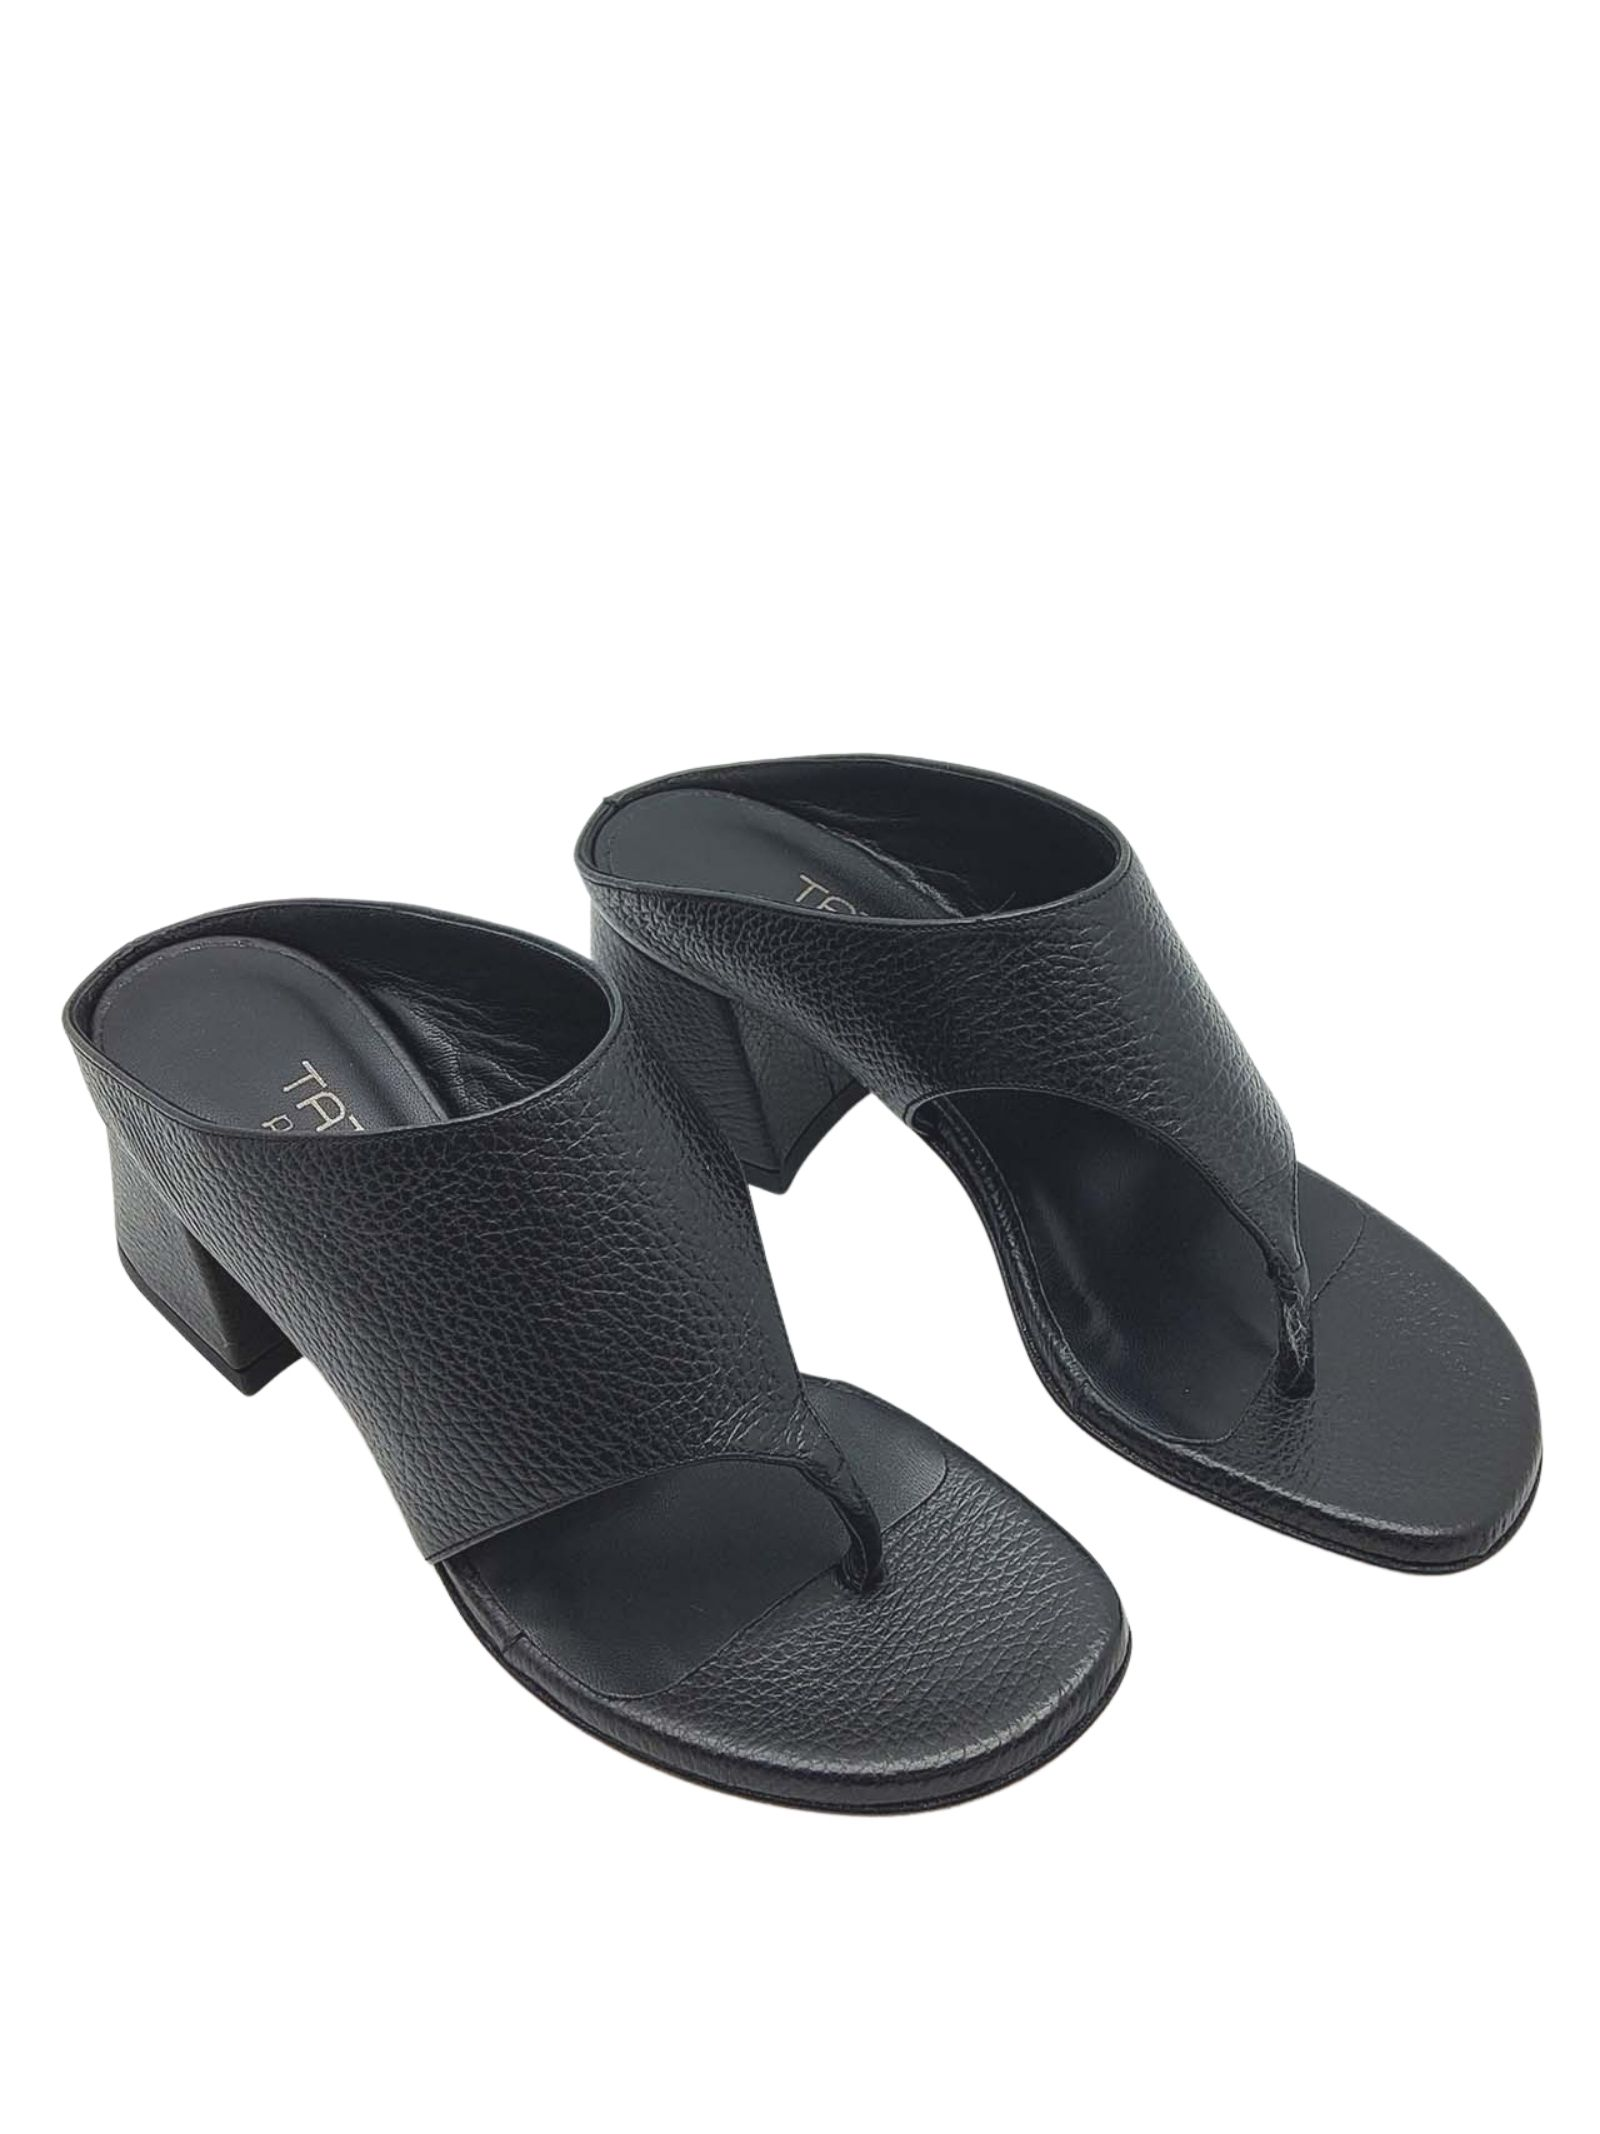 Women's Shoes Thong Sandals in Black Leather with Band Tattoo | Sandals | 4105001